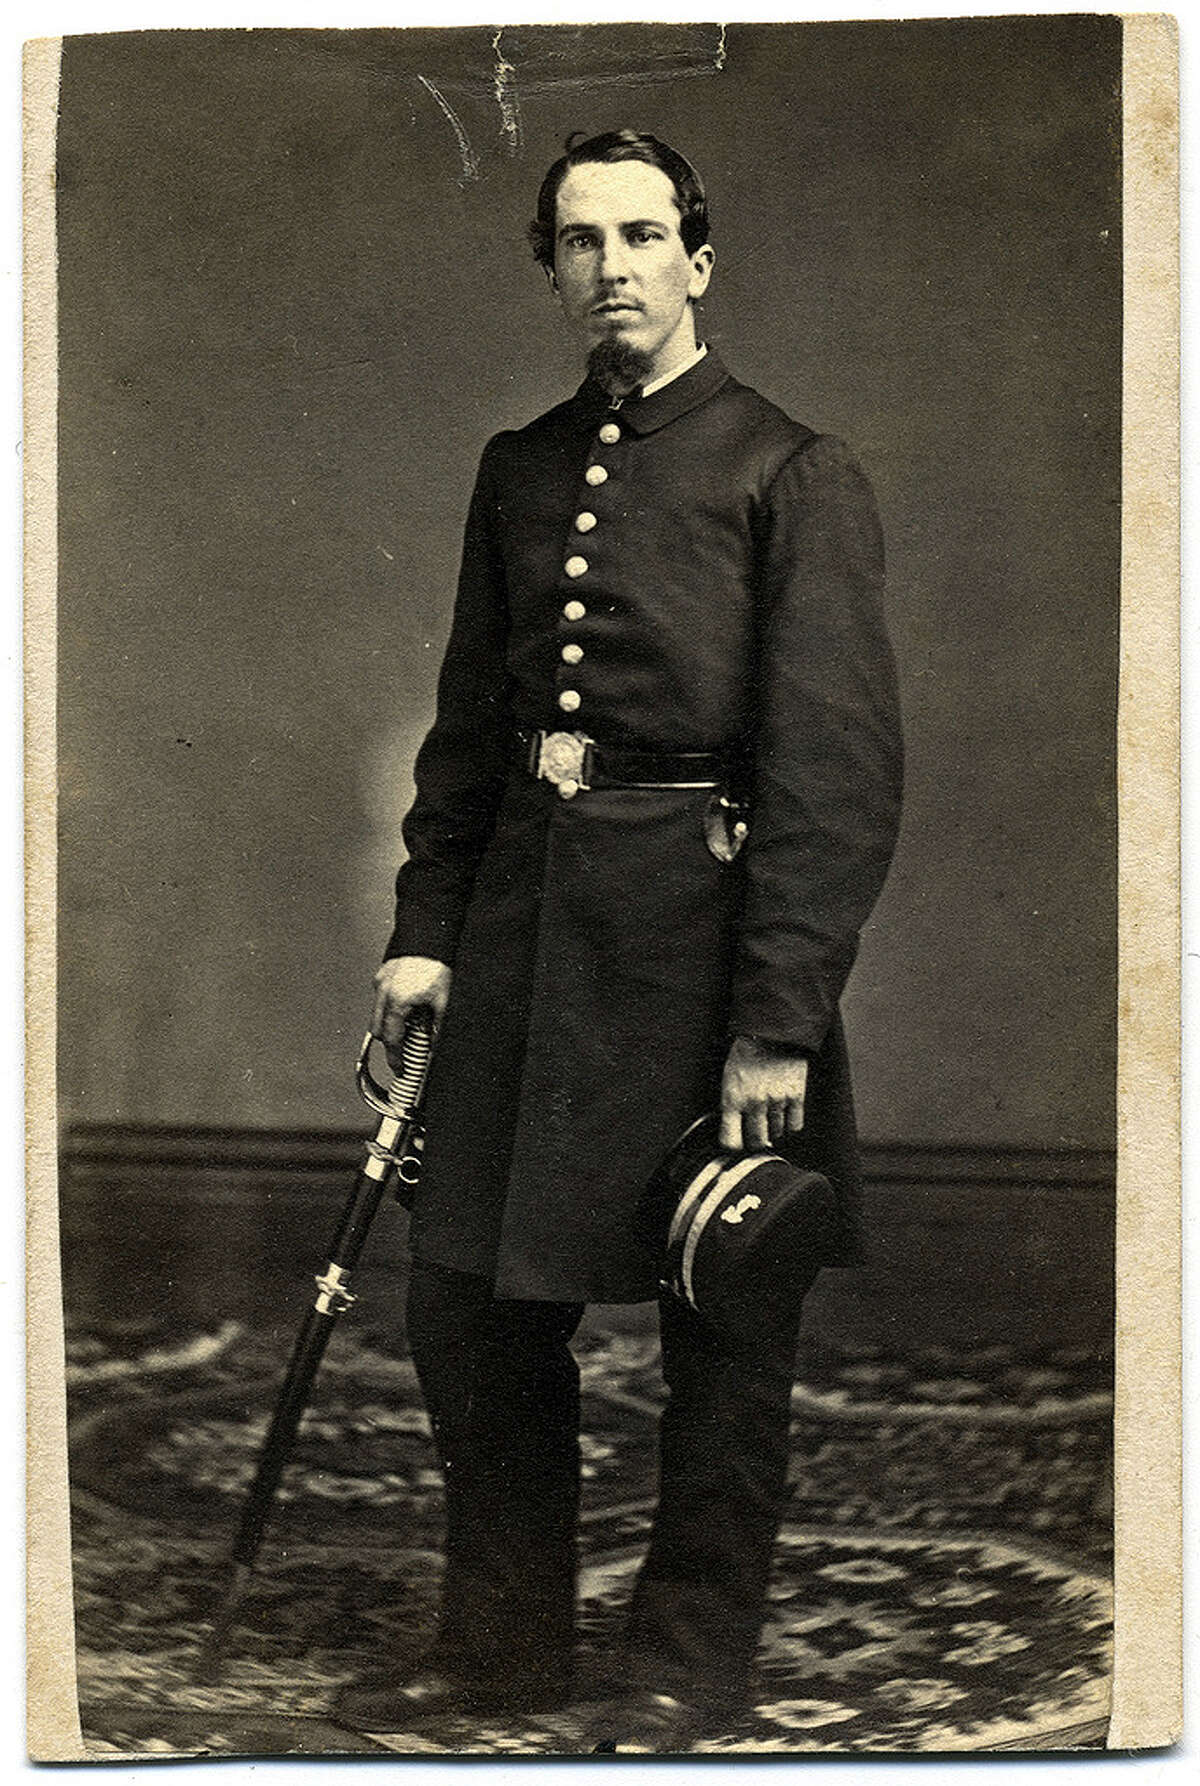 Isaac S. Bradbury, the acting ensign and final commander of the USS Narcissus.